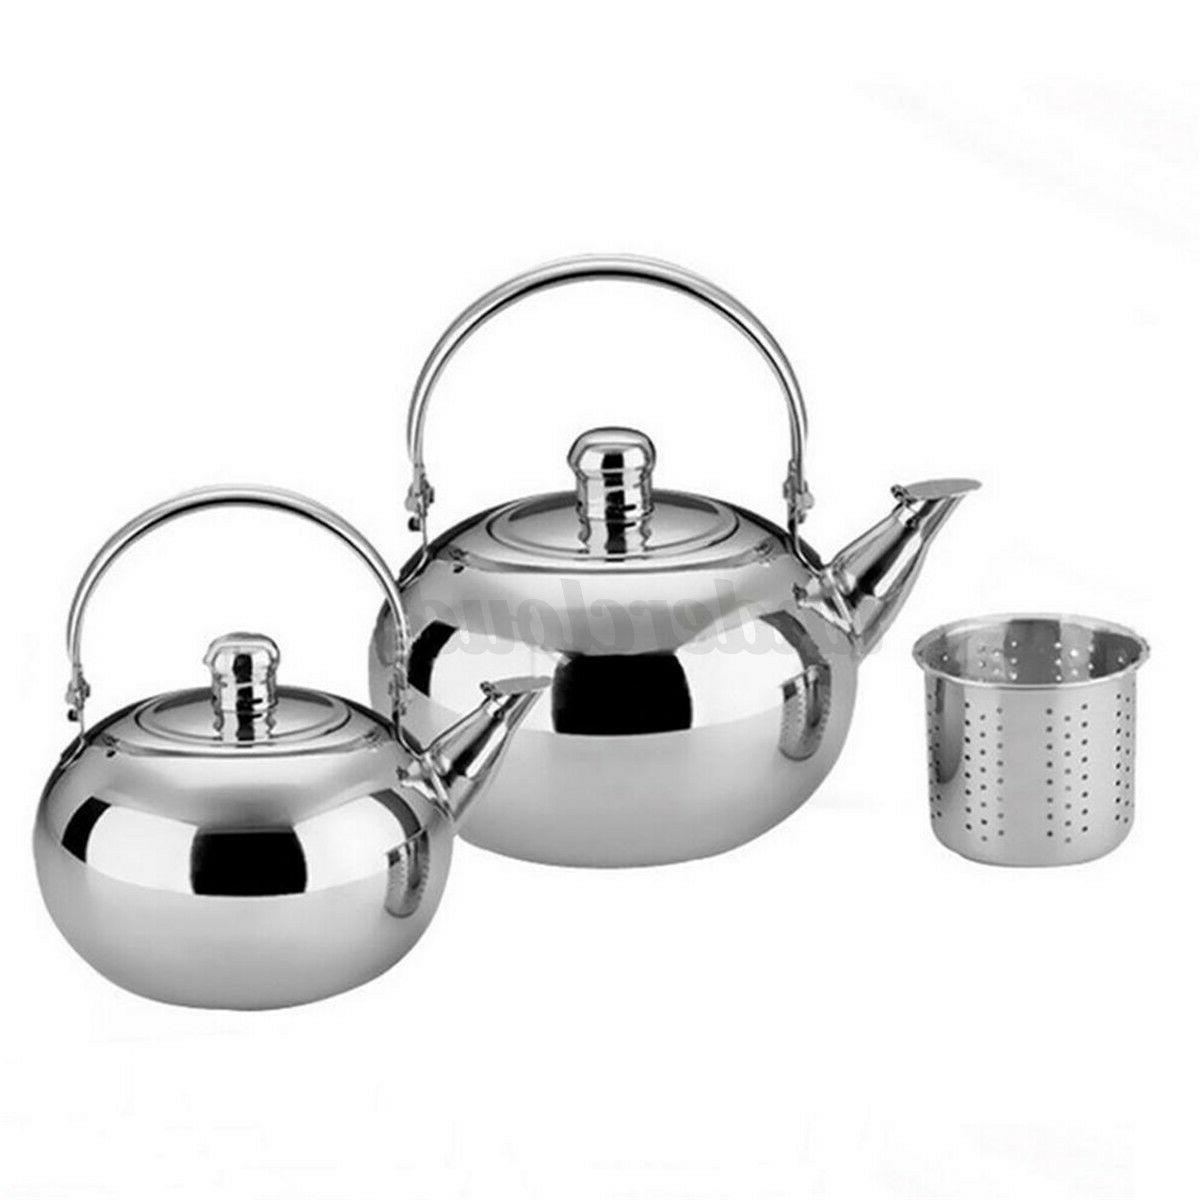 stainless steel teapot silver coffee strainer kettle